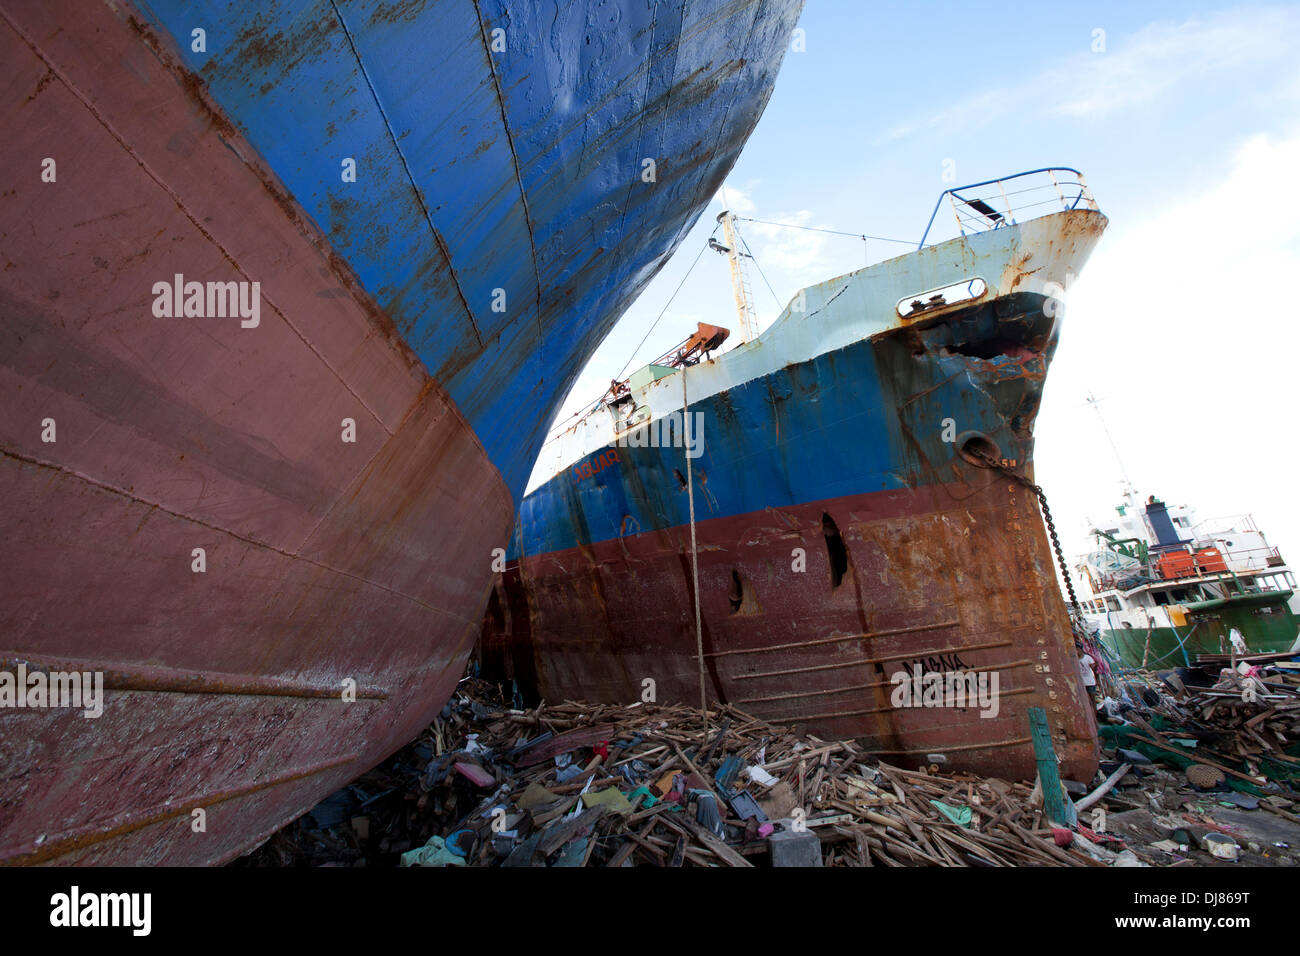 The extreme power of the storm surge accompanying Typhoon Haiyan/Yolanda devastated communities near to the Port area of Tacloban City.Cargo ships at anchor nearby were simply lifted and dumped onto land. - Stock Image